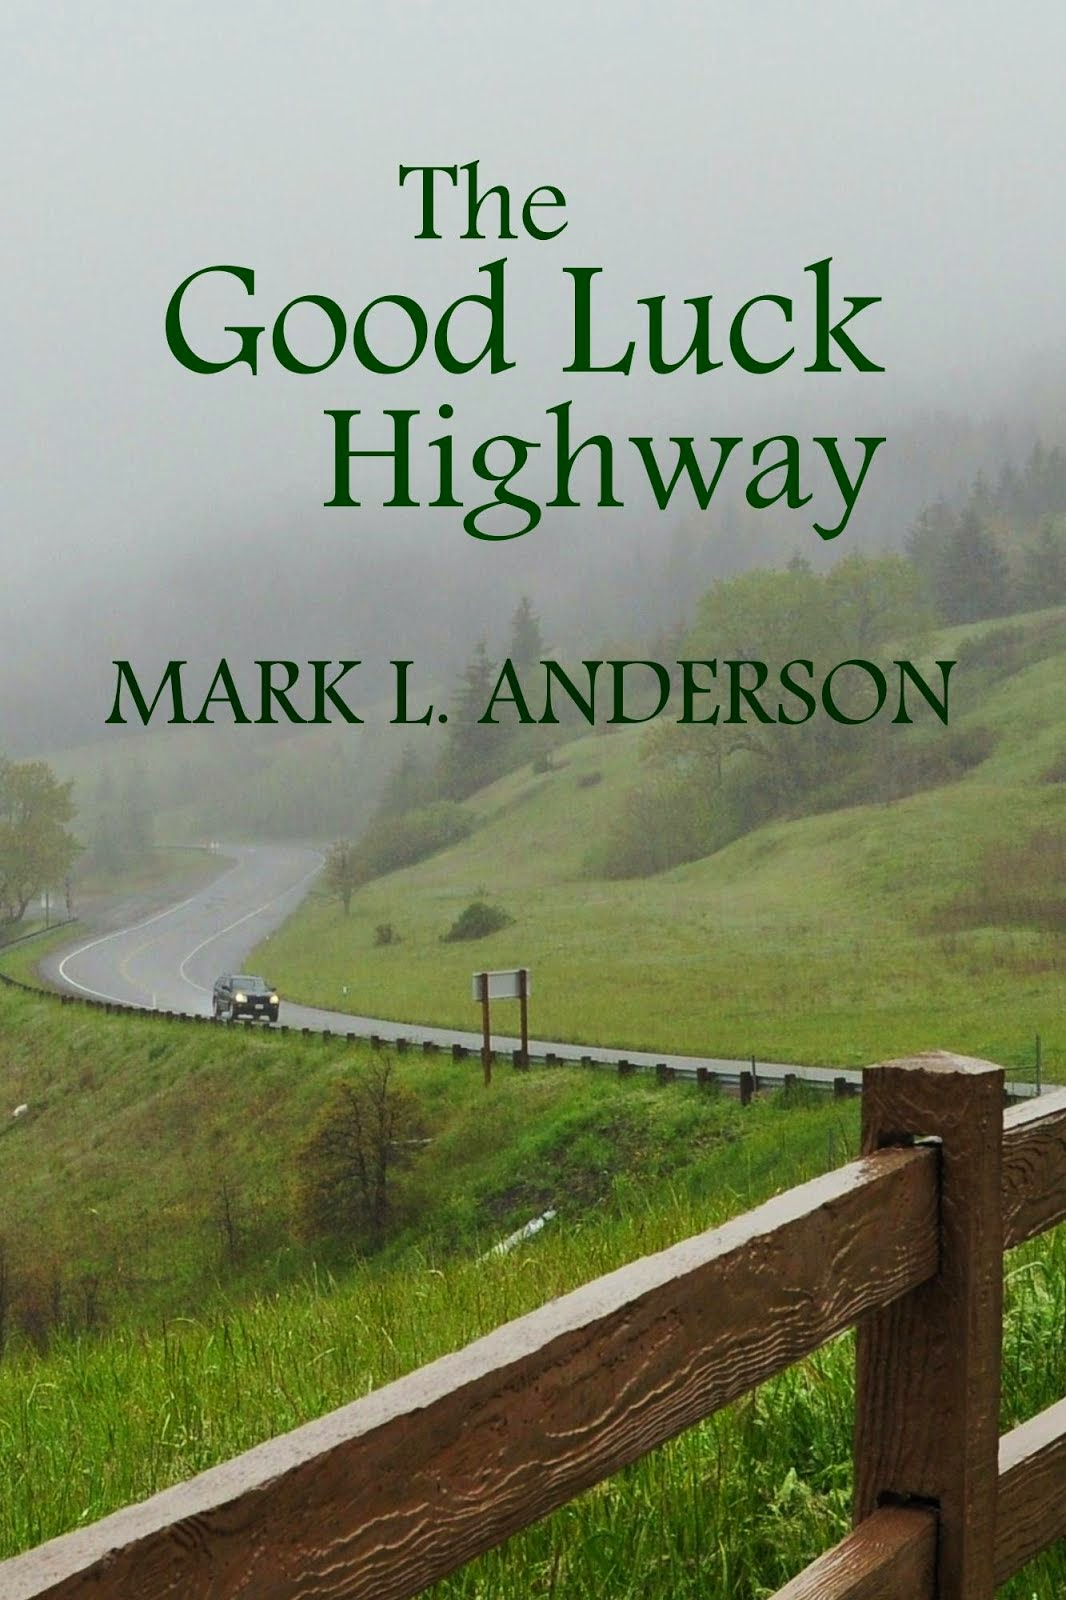 The Good Luck Highway